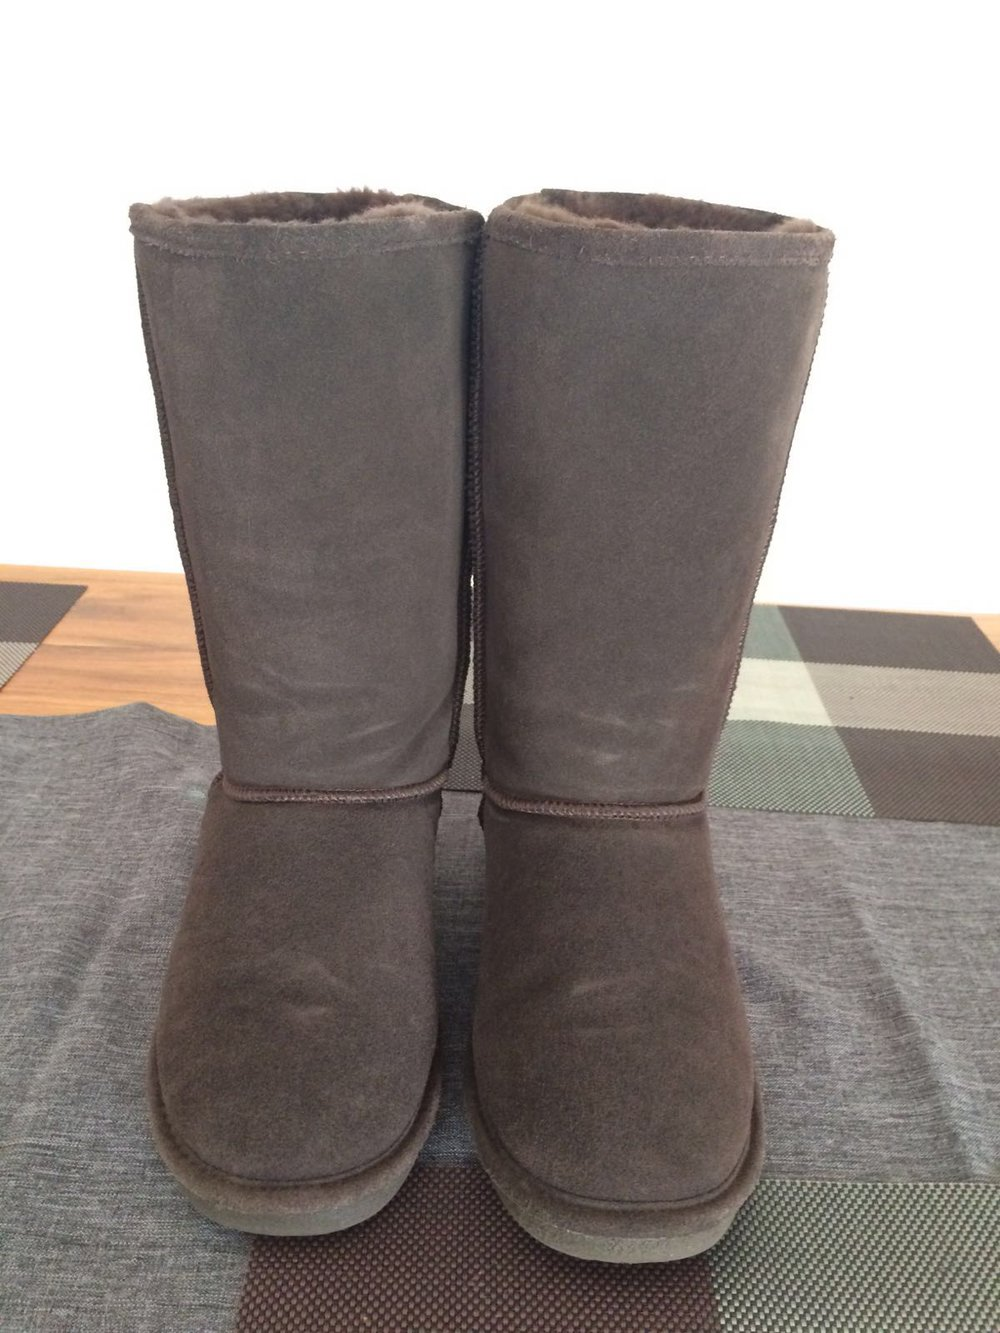 35bbfd107aa Ugg Australia Strick Boots - cheap watches mgc-gas.com